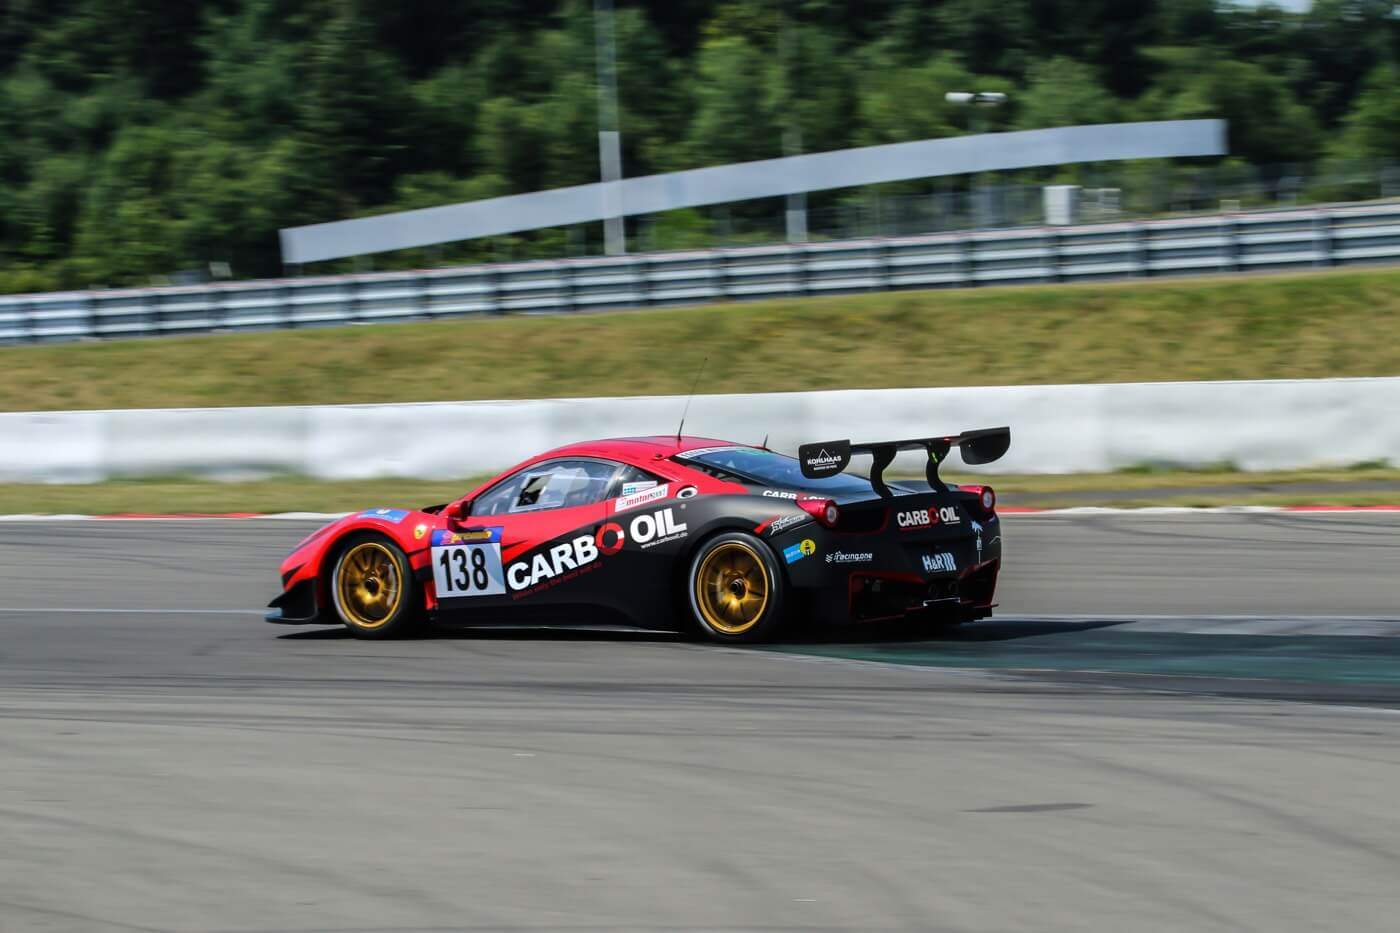 Carbo Oil Ferrari 458 VLN